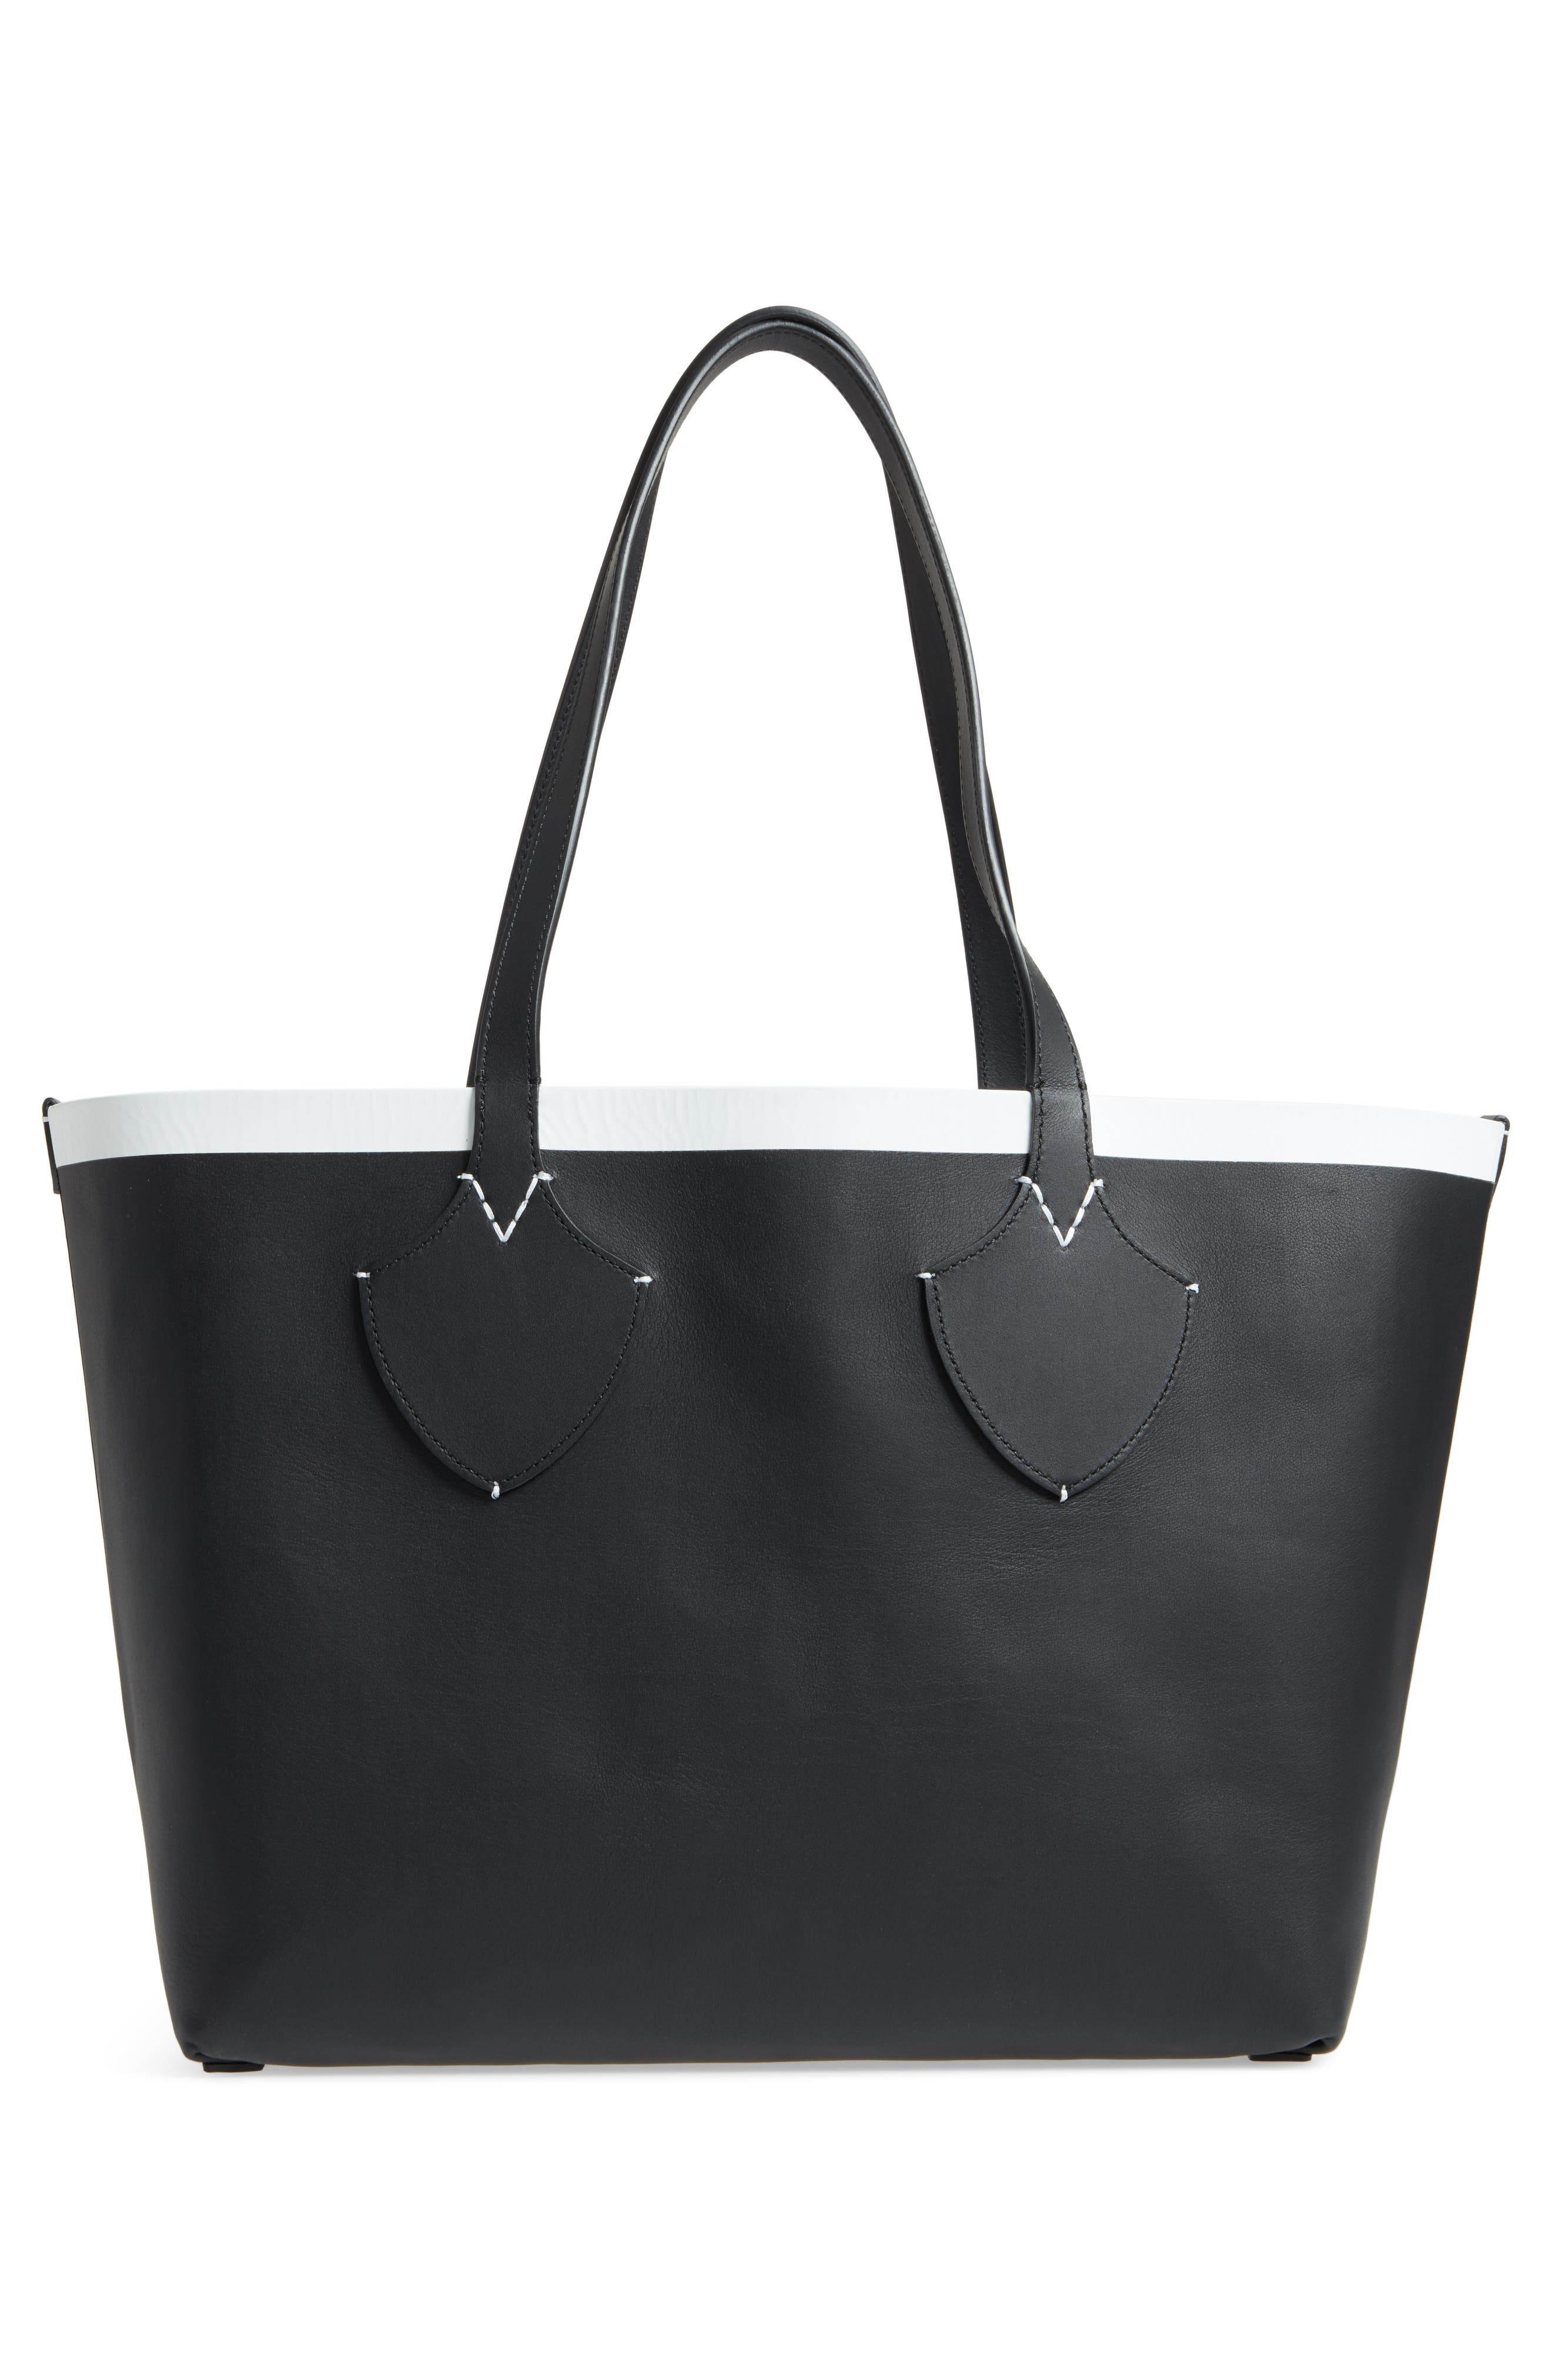 Medium Reversible Leather & Check Canvas Tote,                             Alternate thumbnail 4, color,                             100